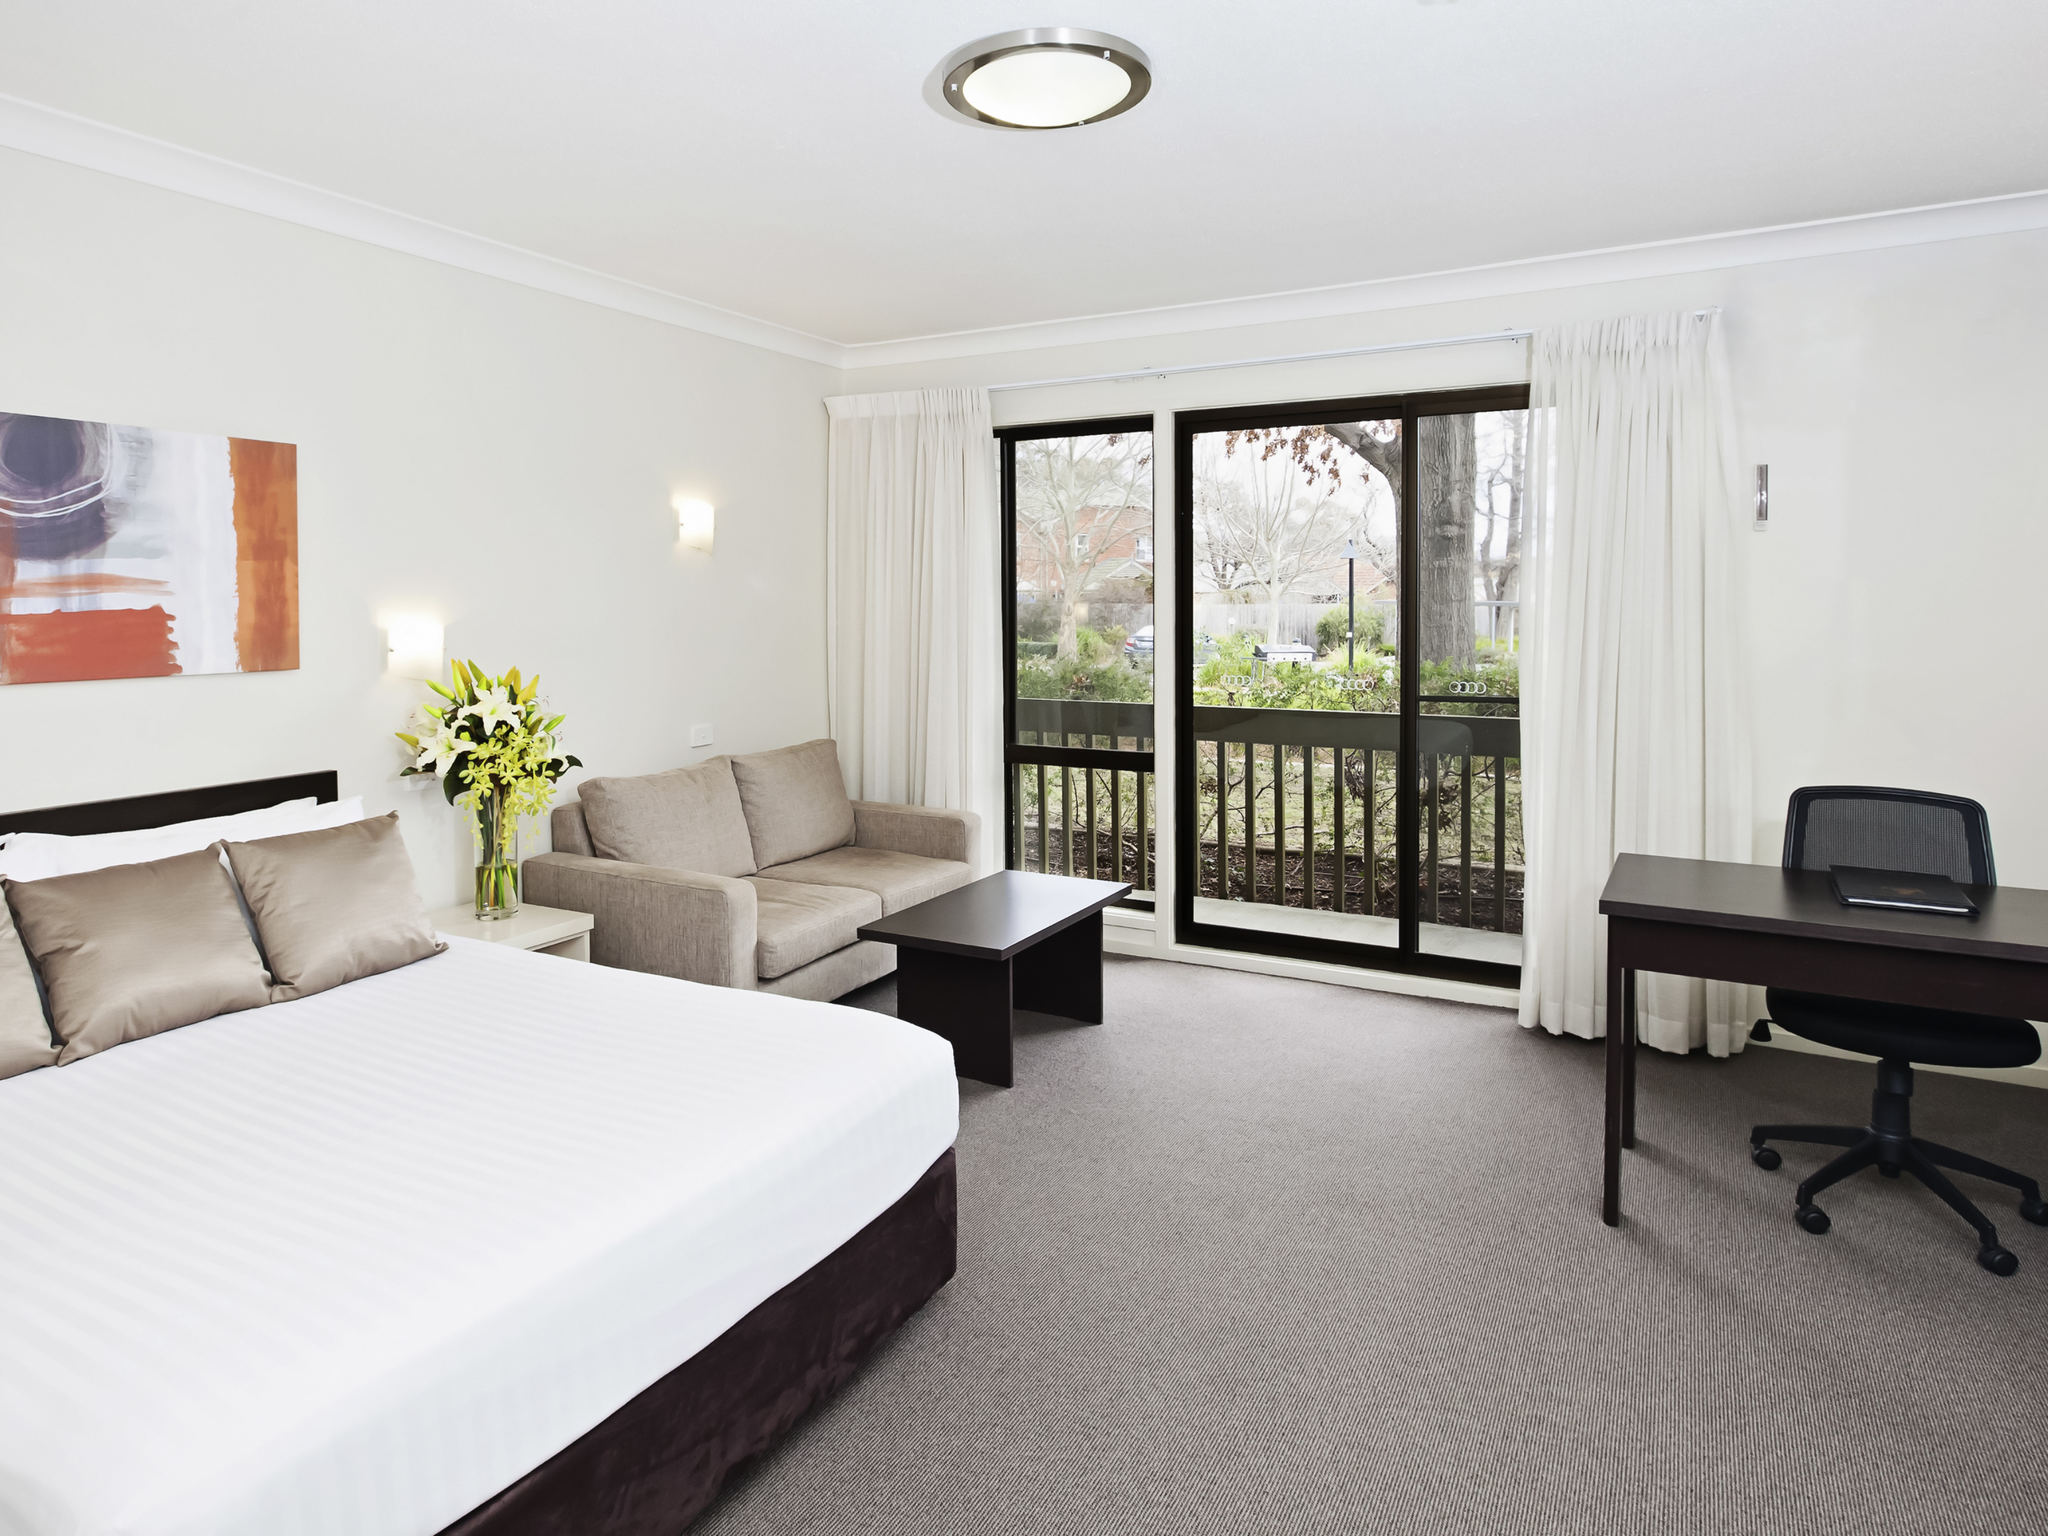 Hotel - Tall Trees Canberra